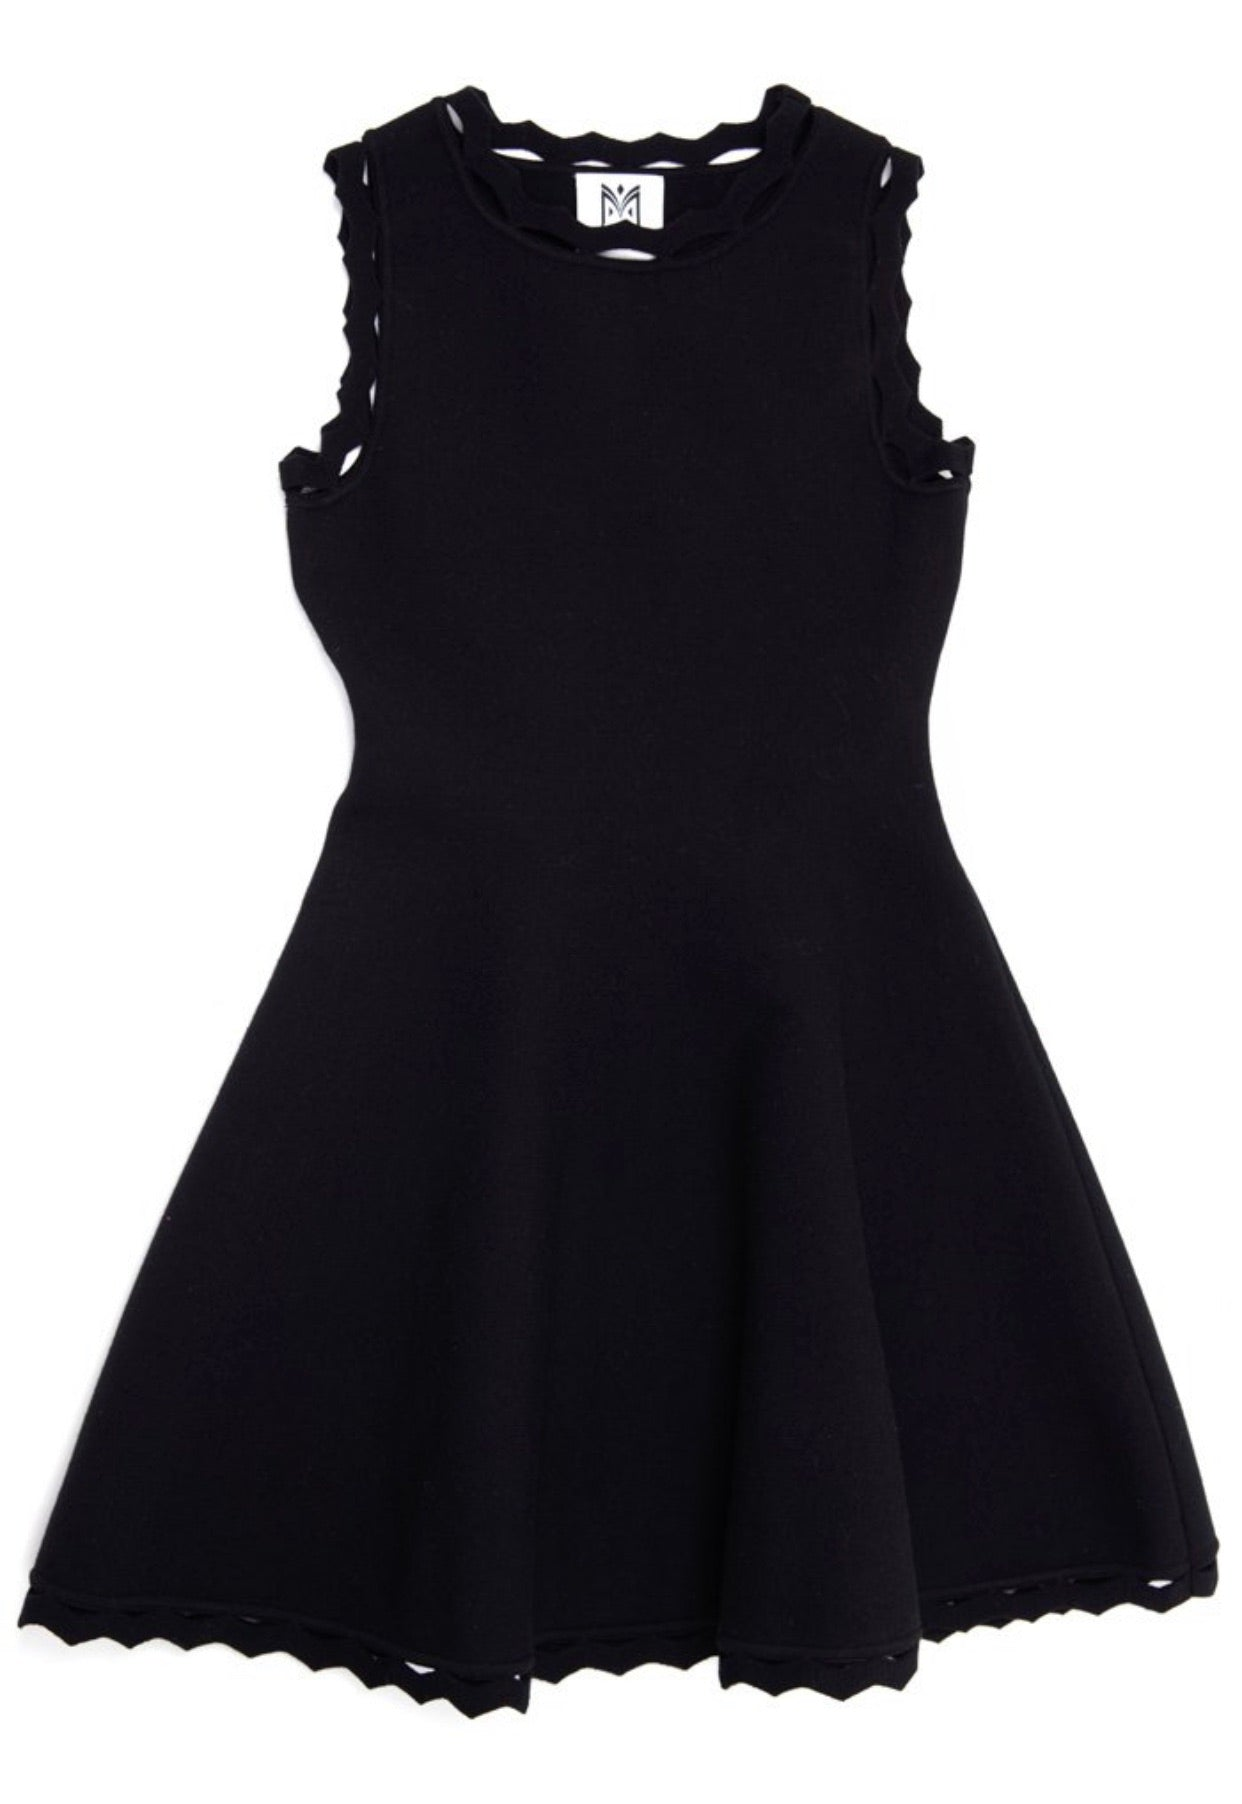 Milly Knit Zig Zag Dress - Black